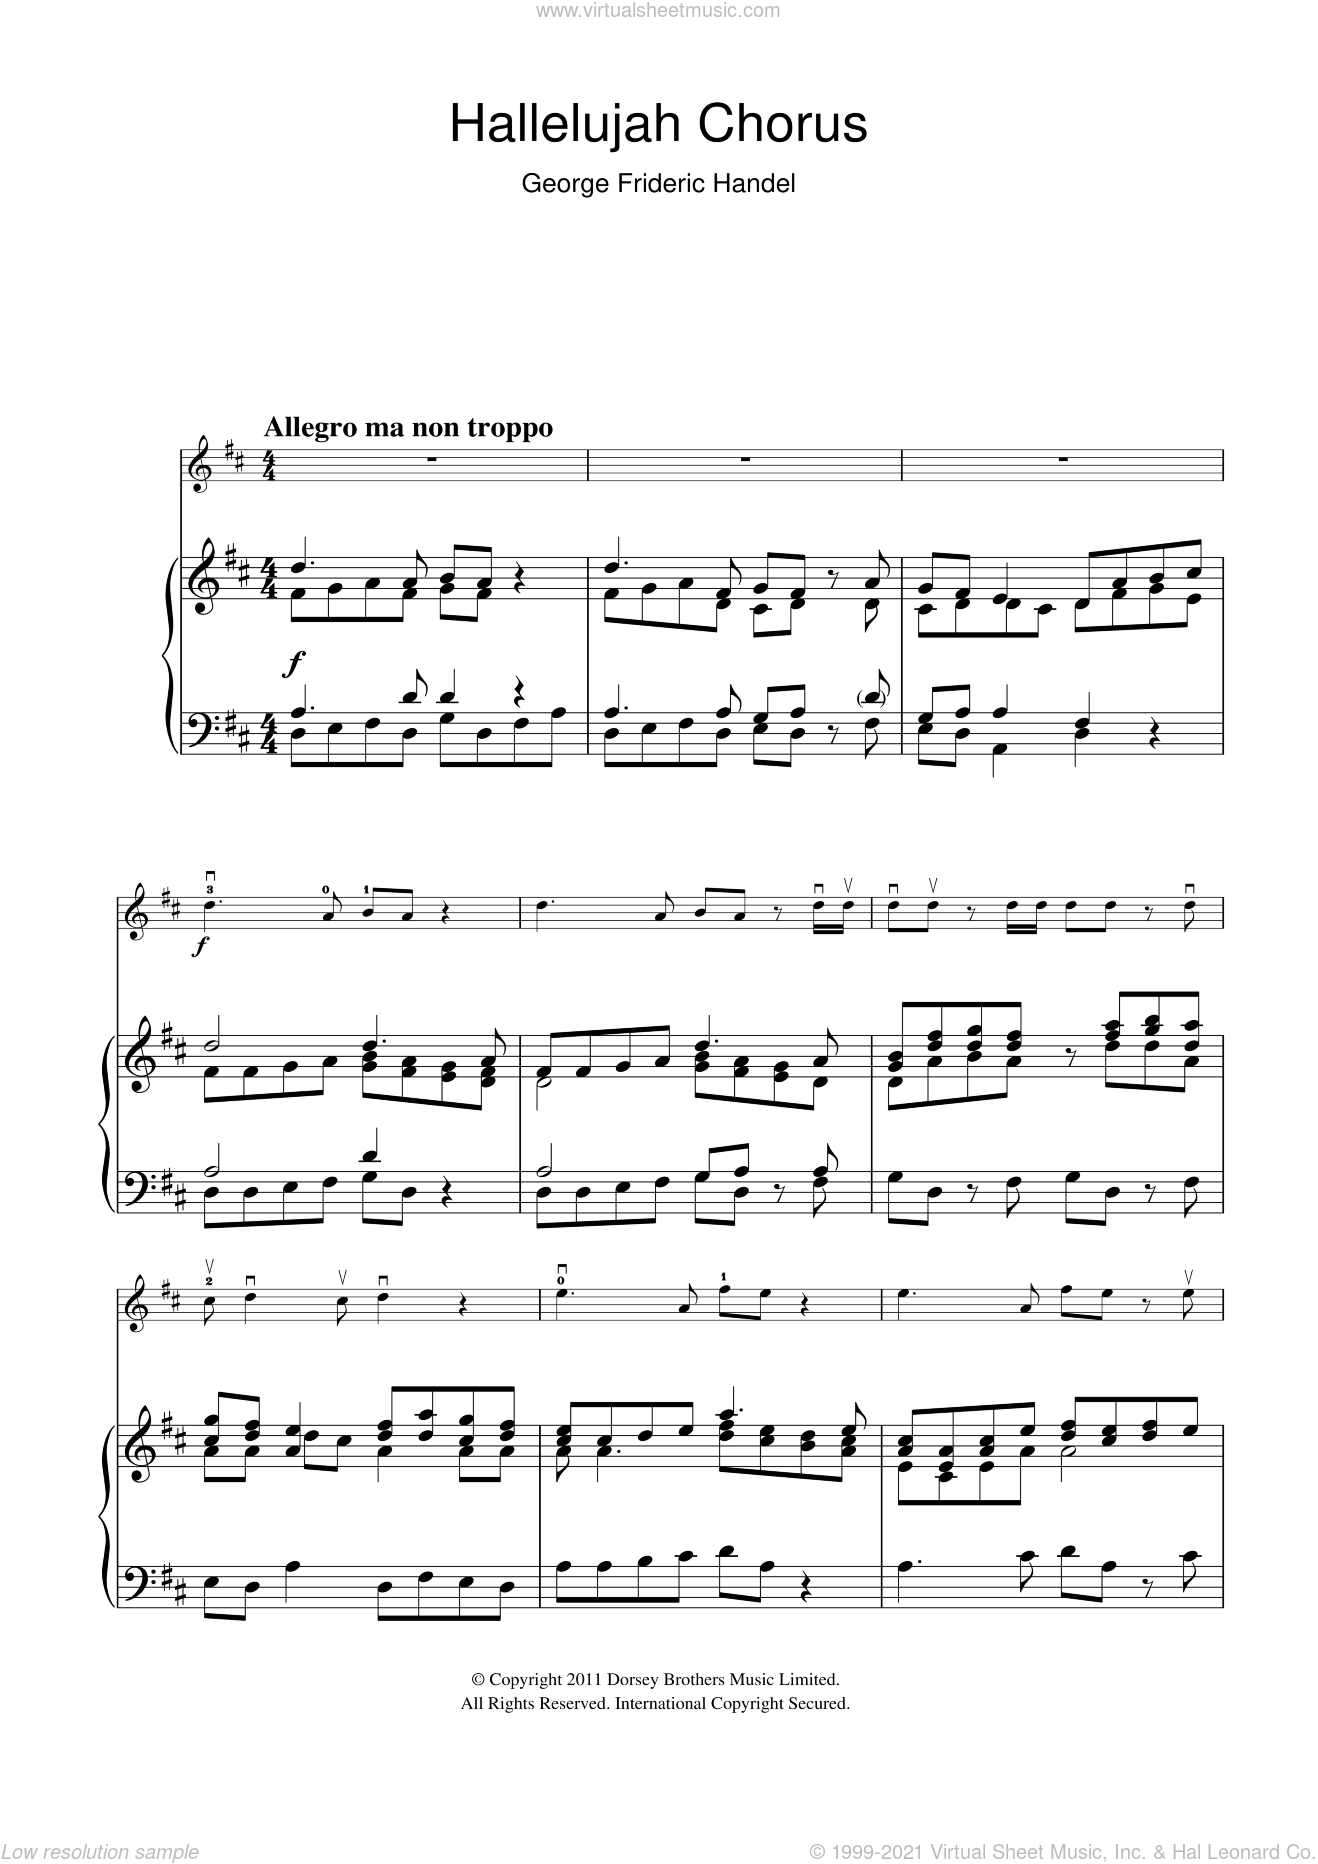 Christmas Hallelujah Sheet Music.Handel Hallelujah Chorus From The Messiah Sheet Music For Violin Solo